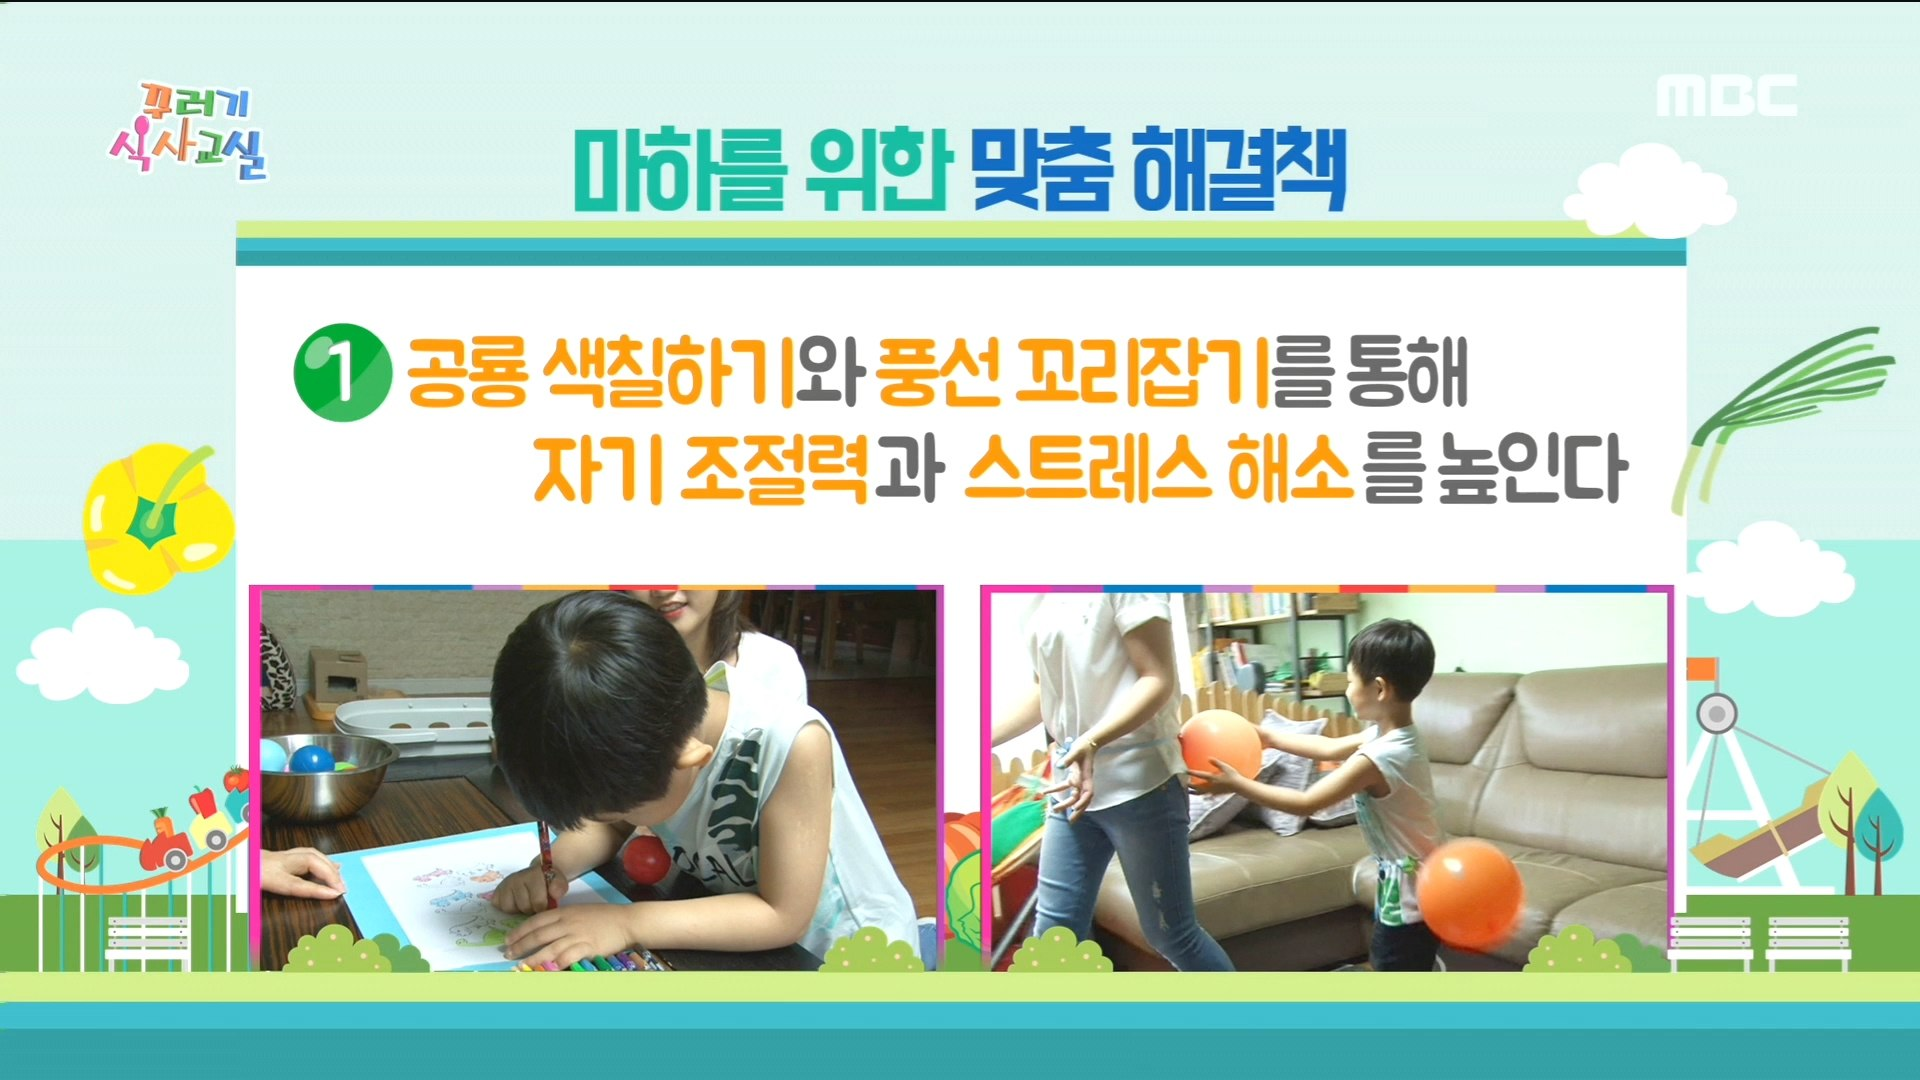 [KIDS] Education for kid who is addicted to violent game show,꾸러기식사교실 20190712